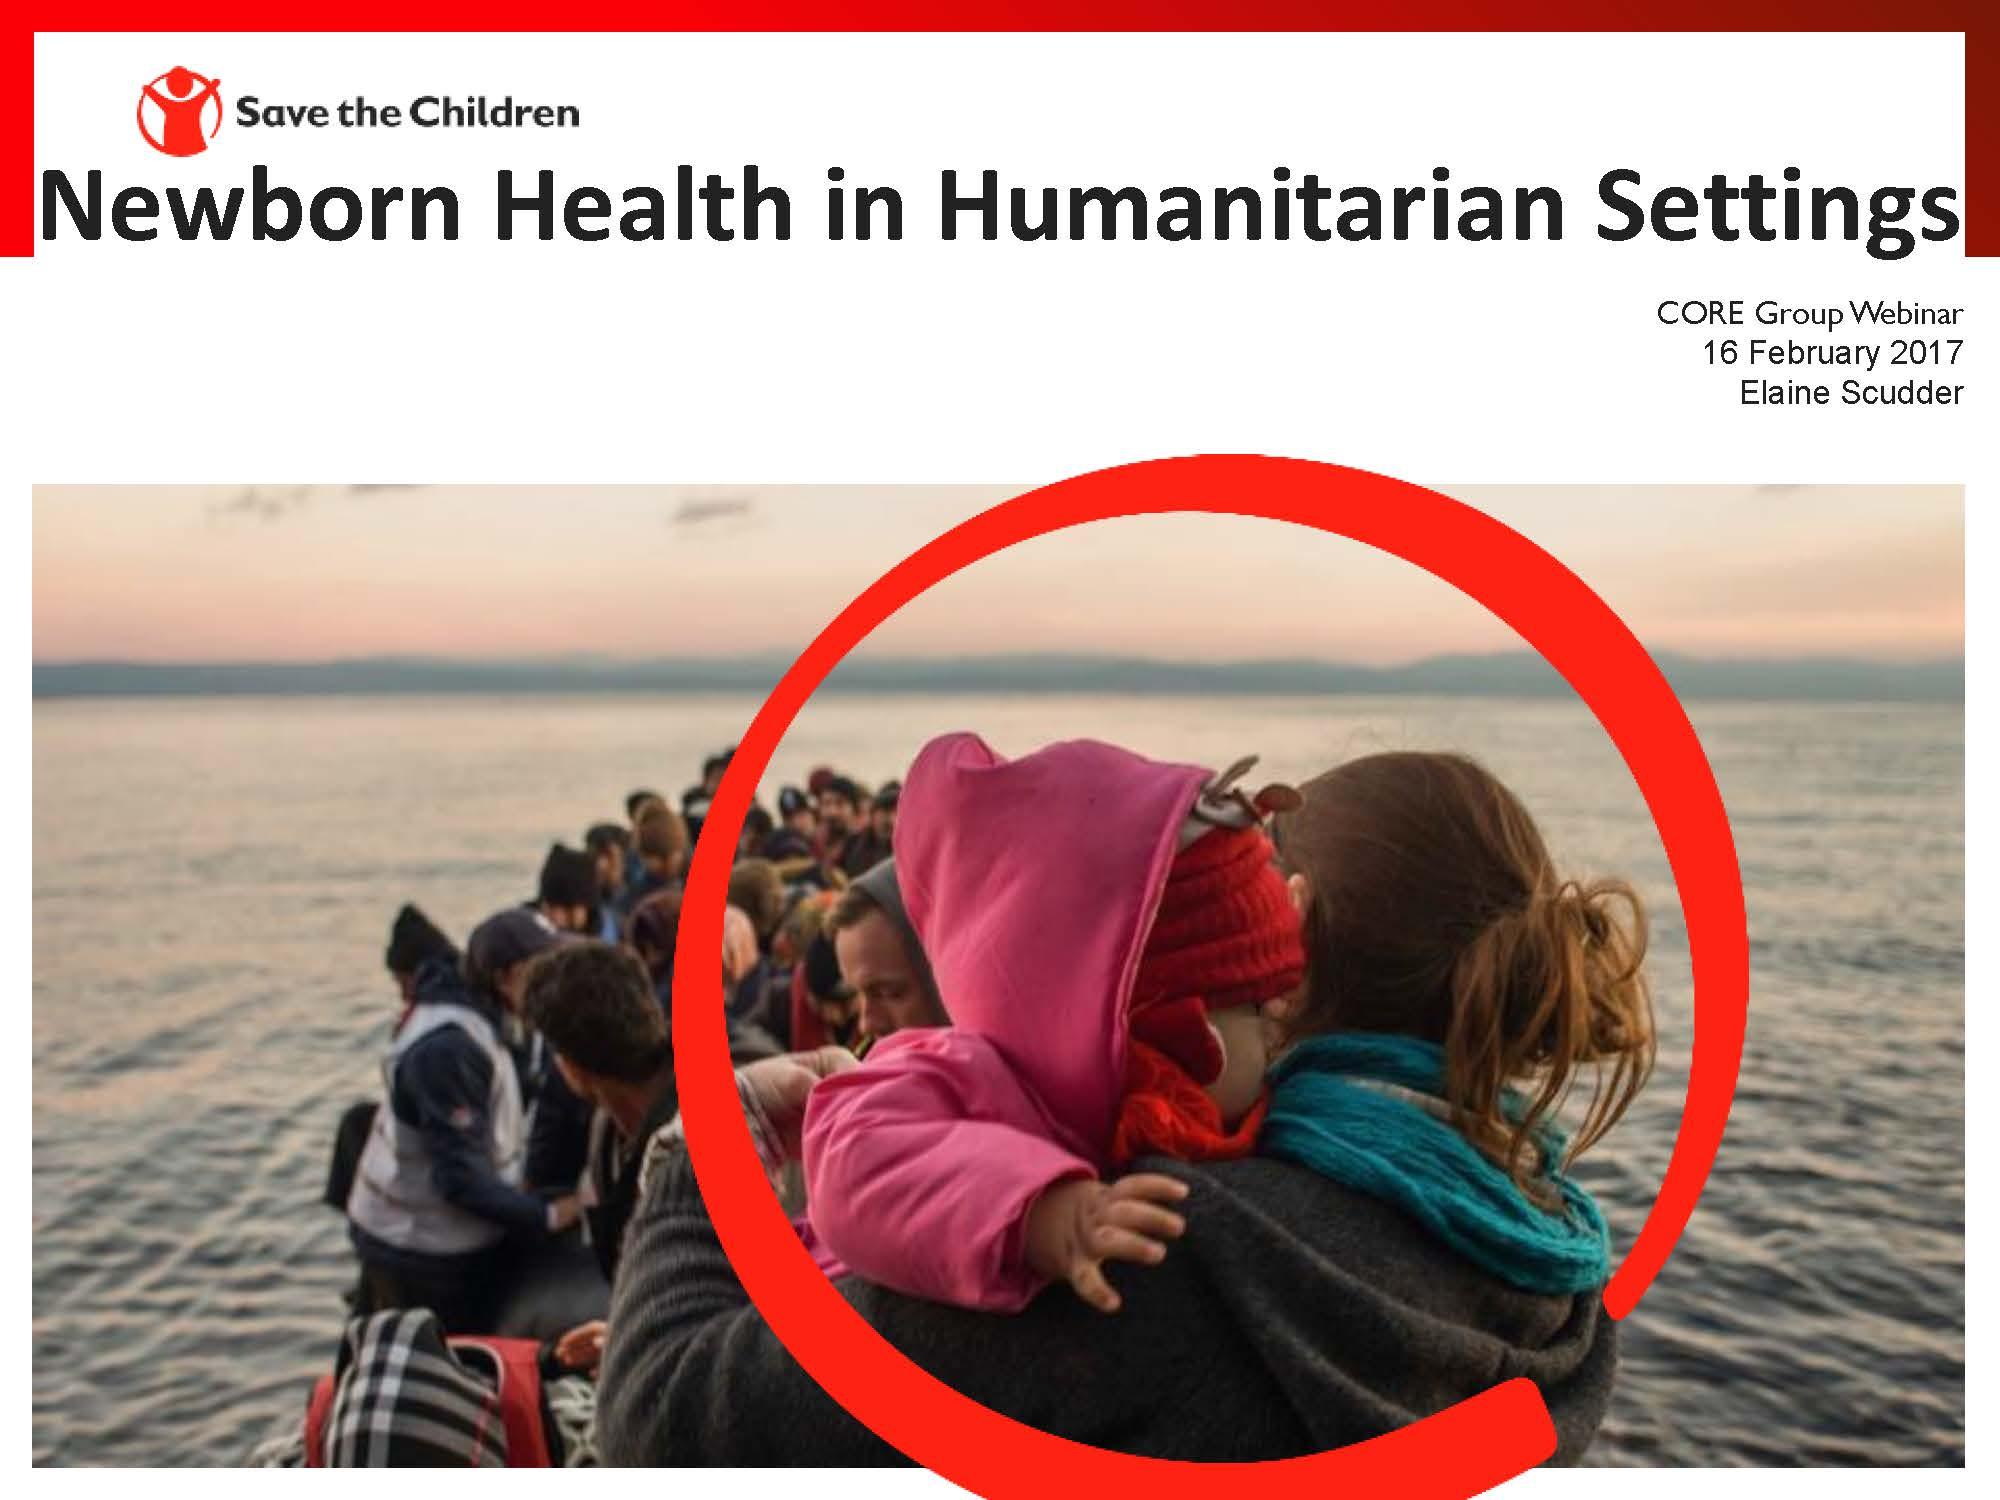 Newborn Health in Humanitarian Settings Guide